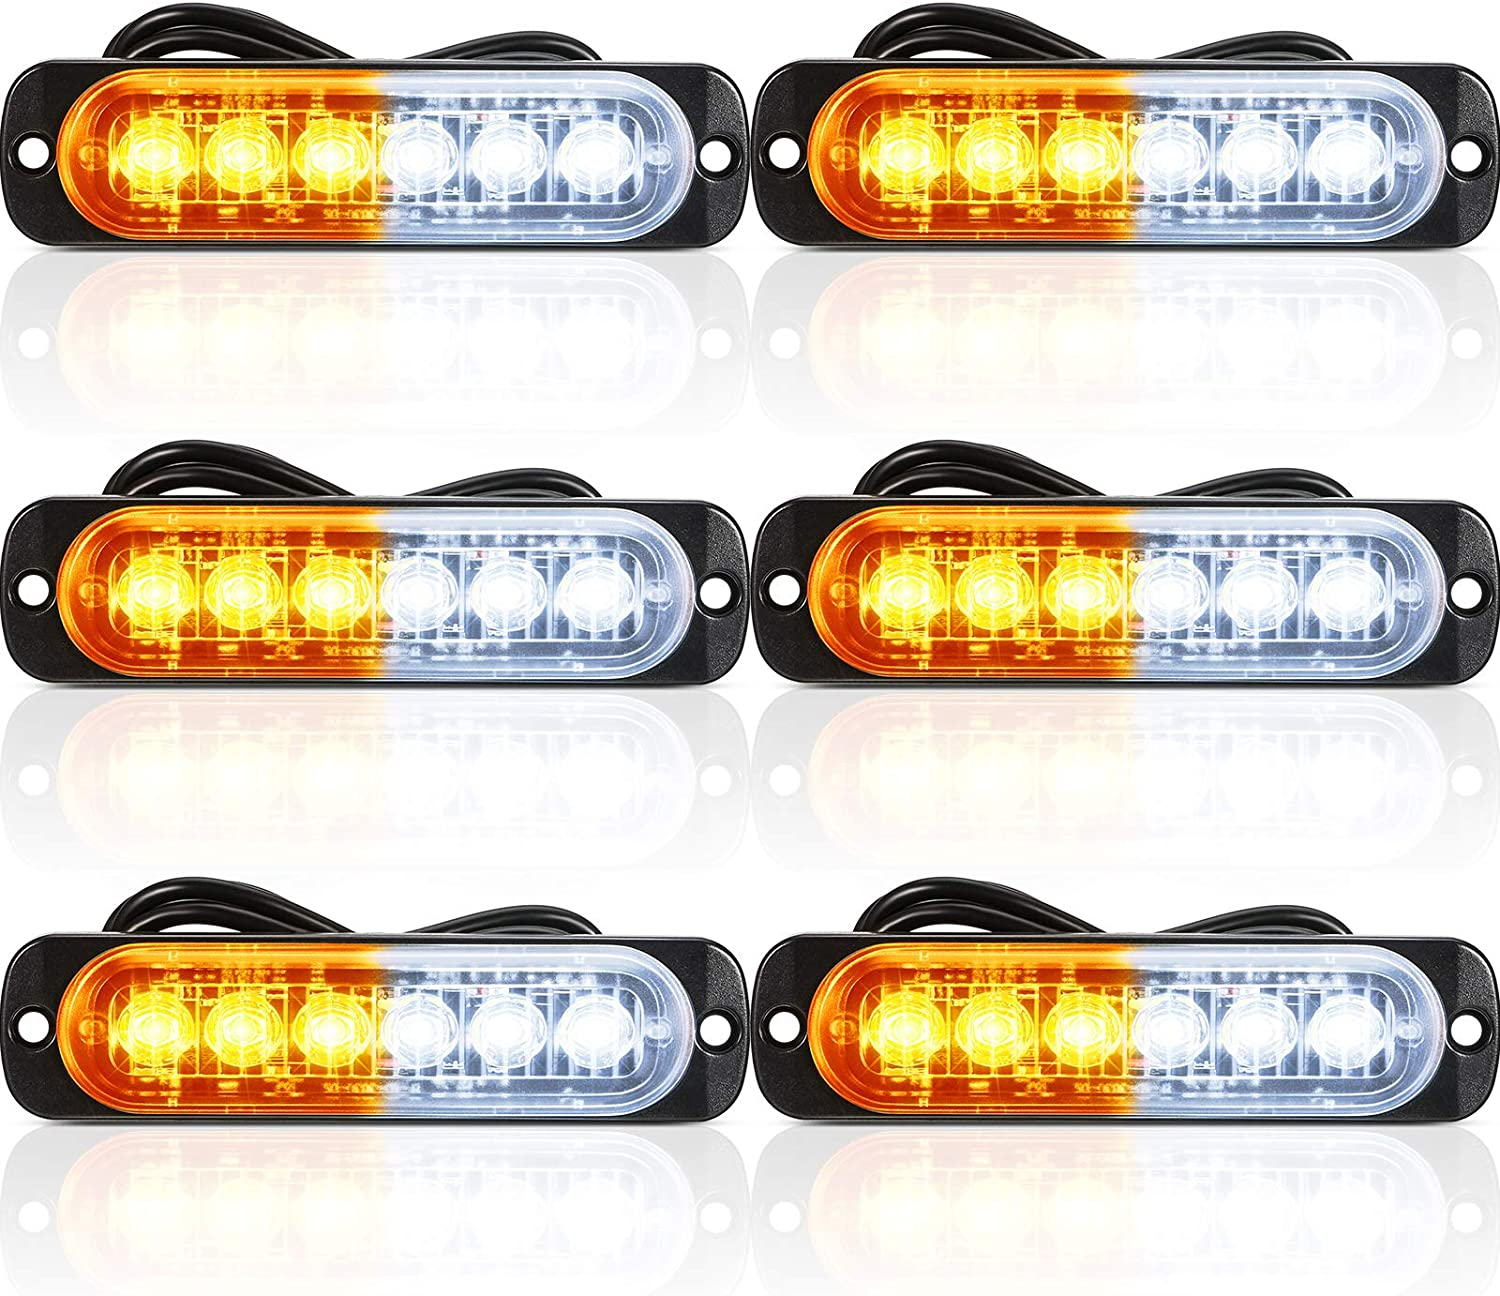 6 Pieces LED Emergency Strobe Surfa Light Deluxe Mesa Mall Car Lights Bars